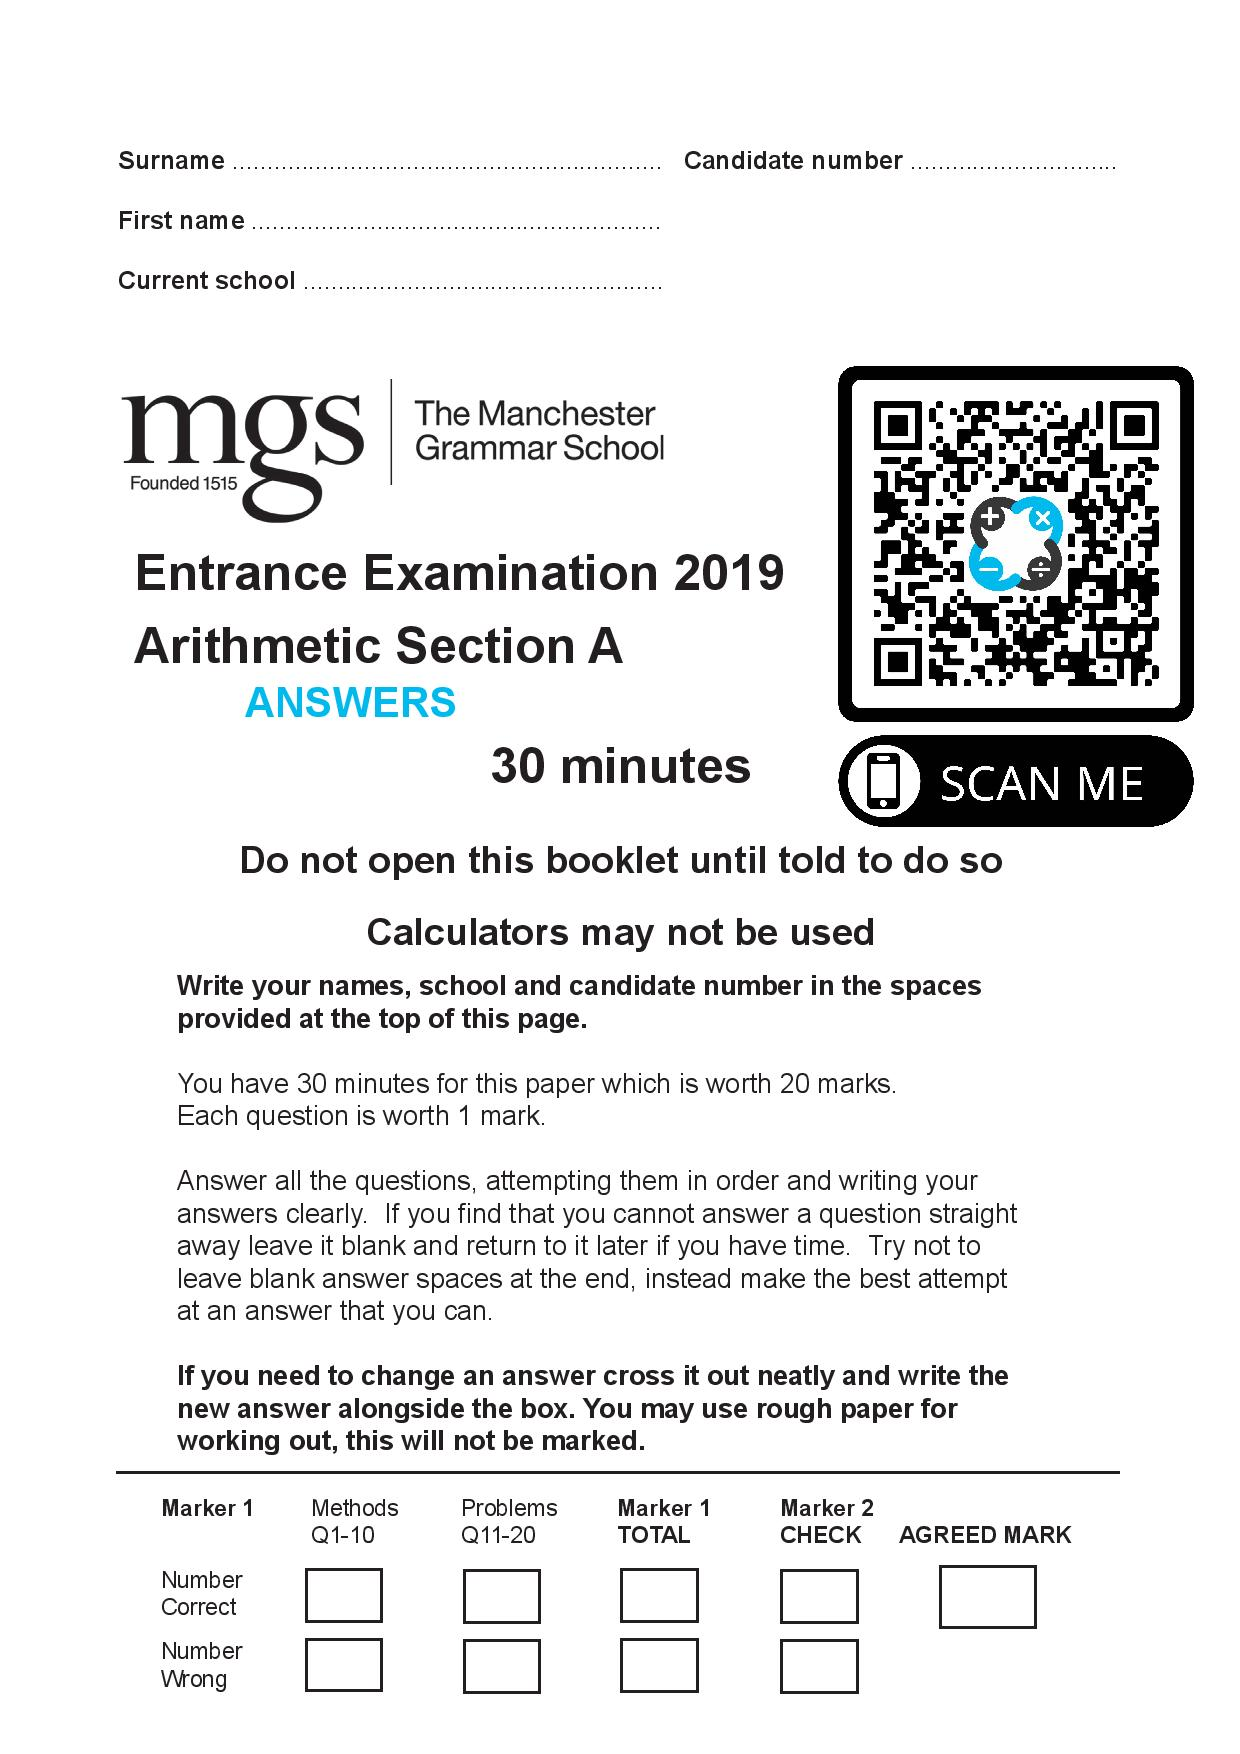 The Manchester Grammar School Entrance Examination 2019 Arithmetic Section A Answer Paper page 001